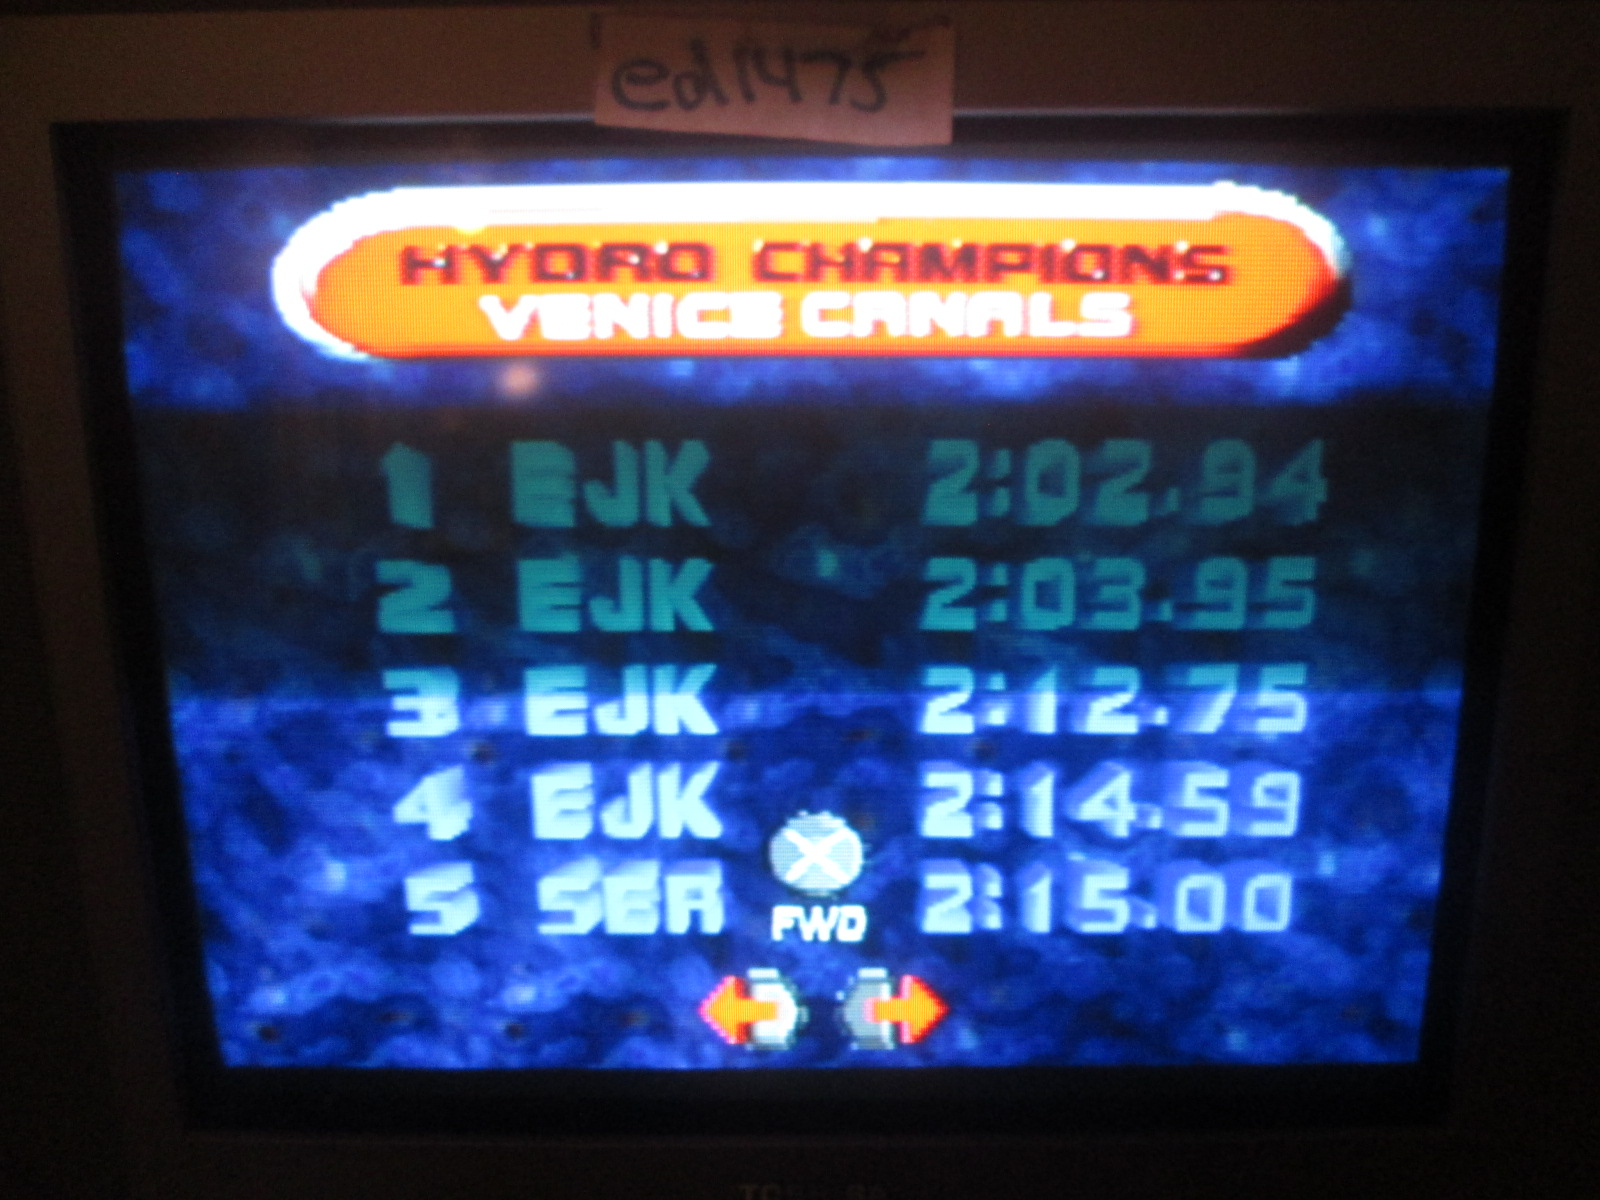 ed1475: Hydro Thunder: Venice Canals (Playstation 1) 0:02:02.94 points on 2016-12-03 19:06:59